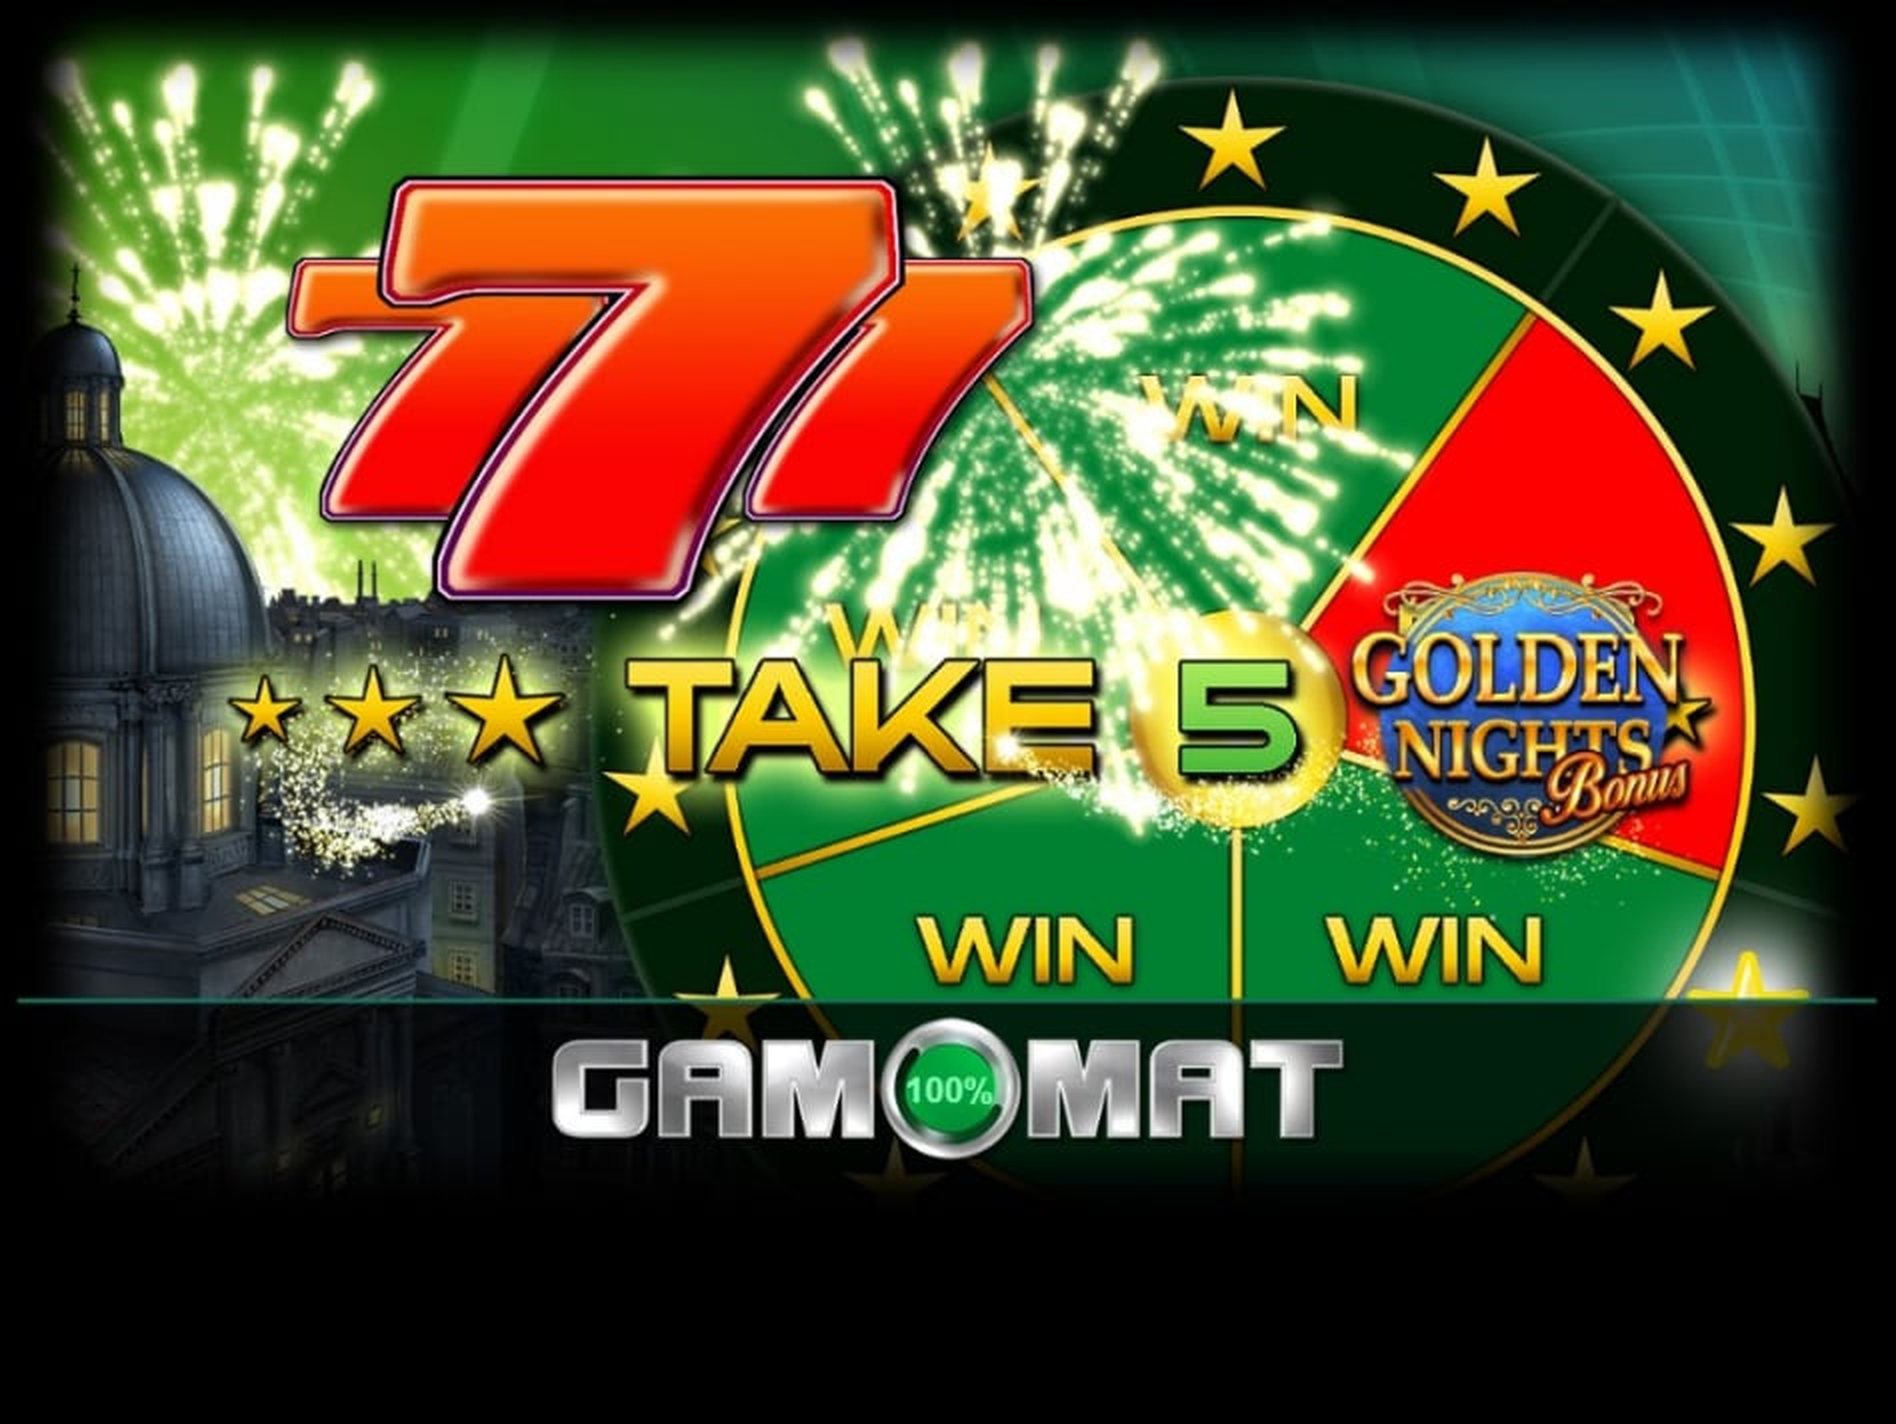 The Take 5 GDN Online Slot Demo Game by Gamomat